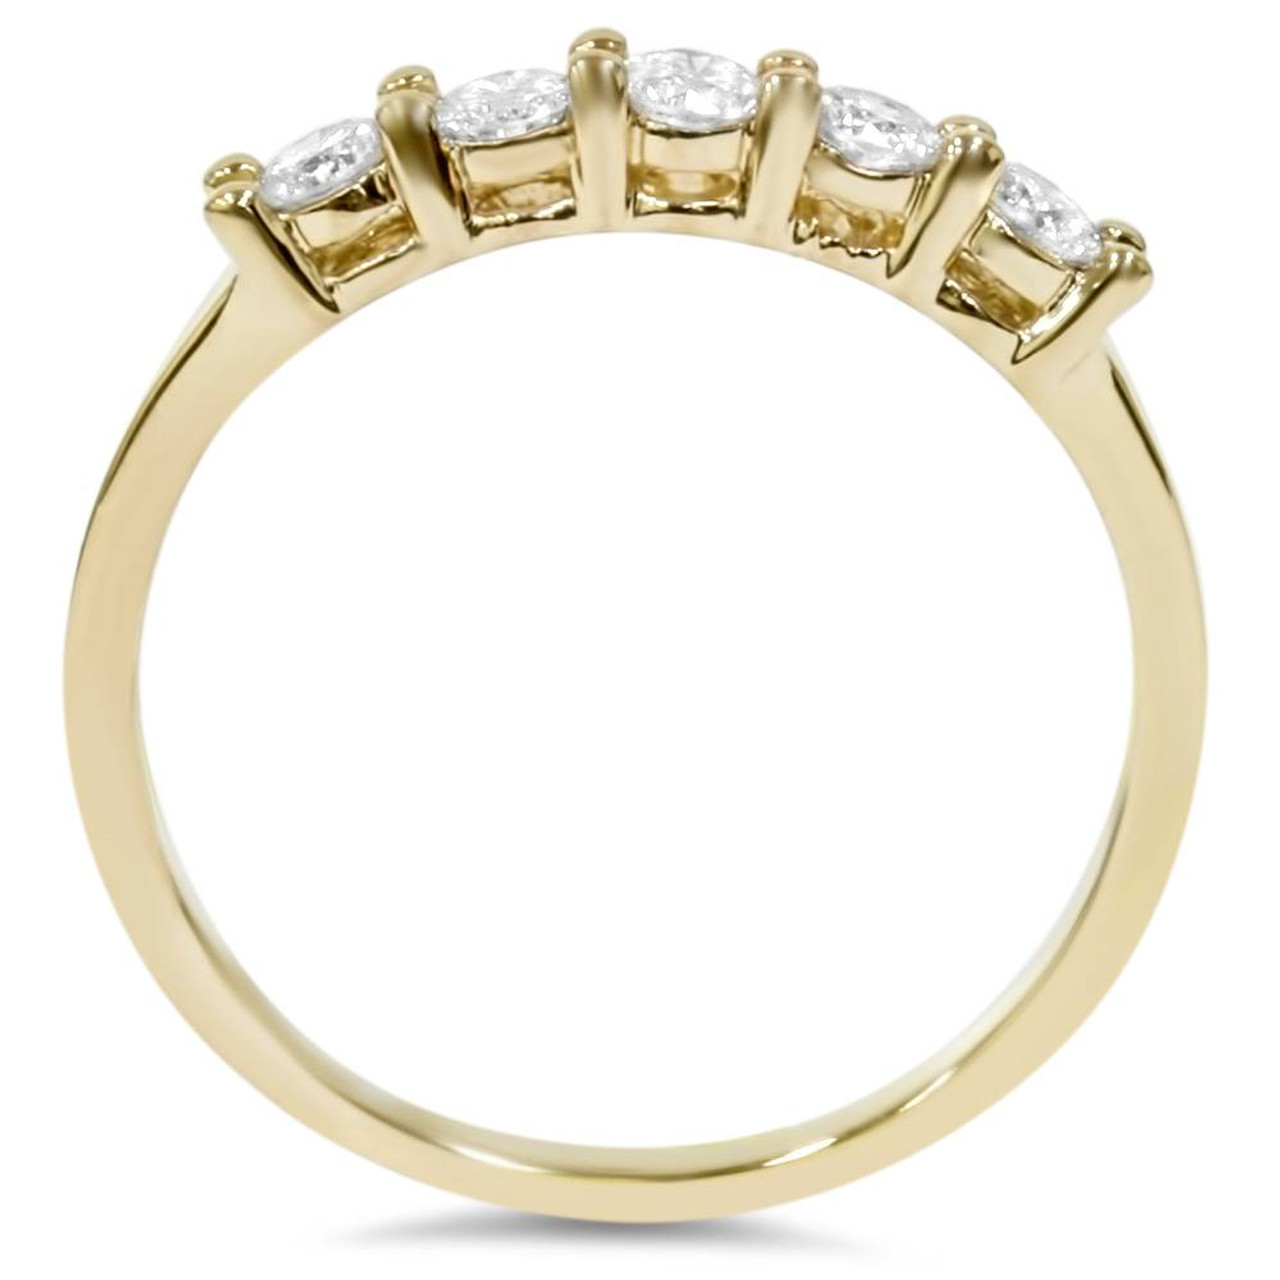 34ct Diamond 5Stone Wedding Anniversary 14K Gold Ring